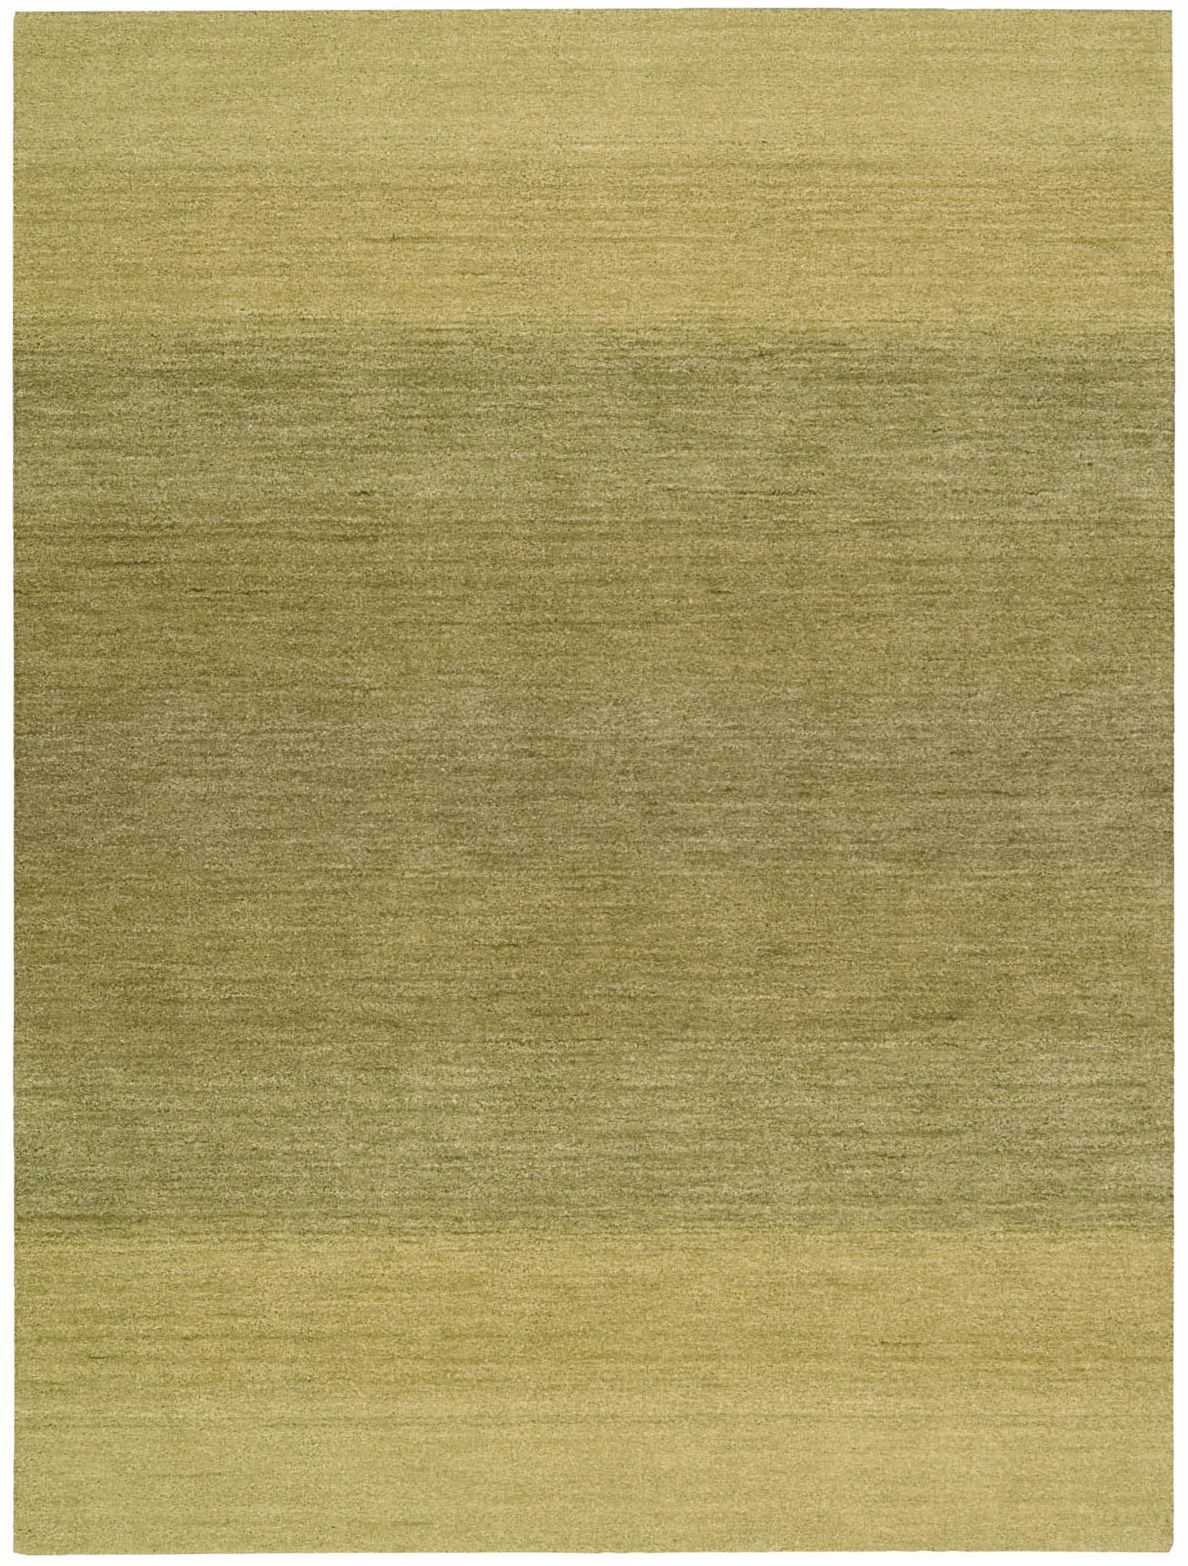 Linear Glow CK rug GLO01 Verbe